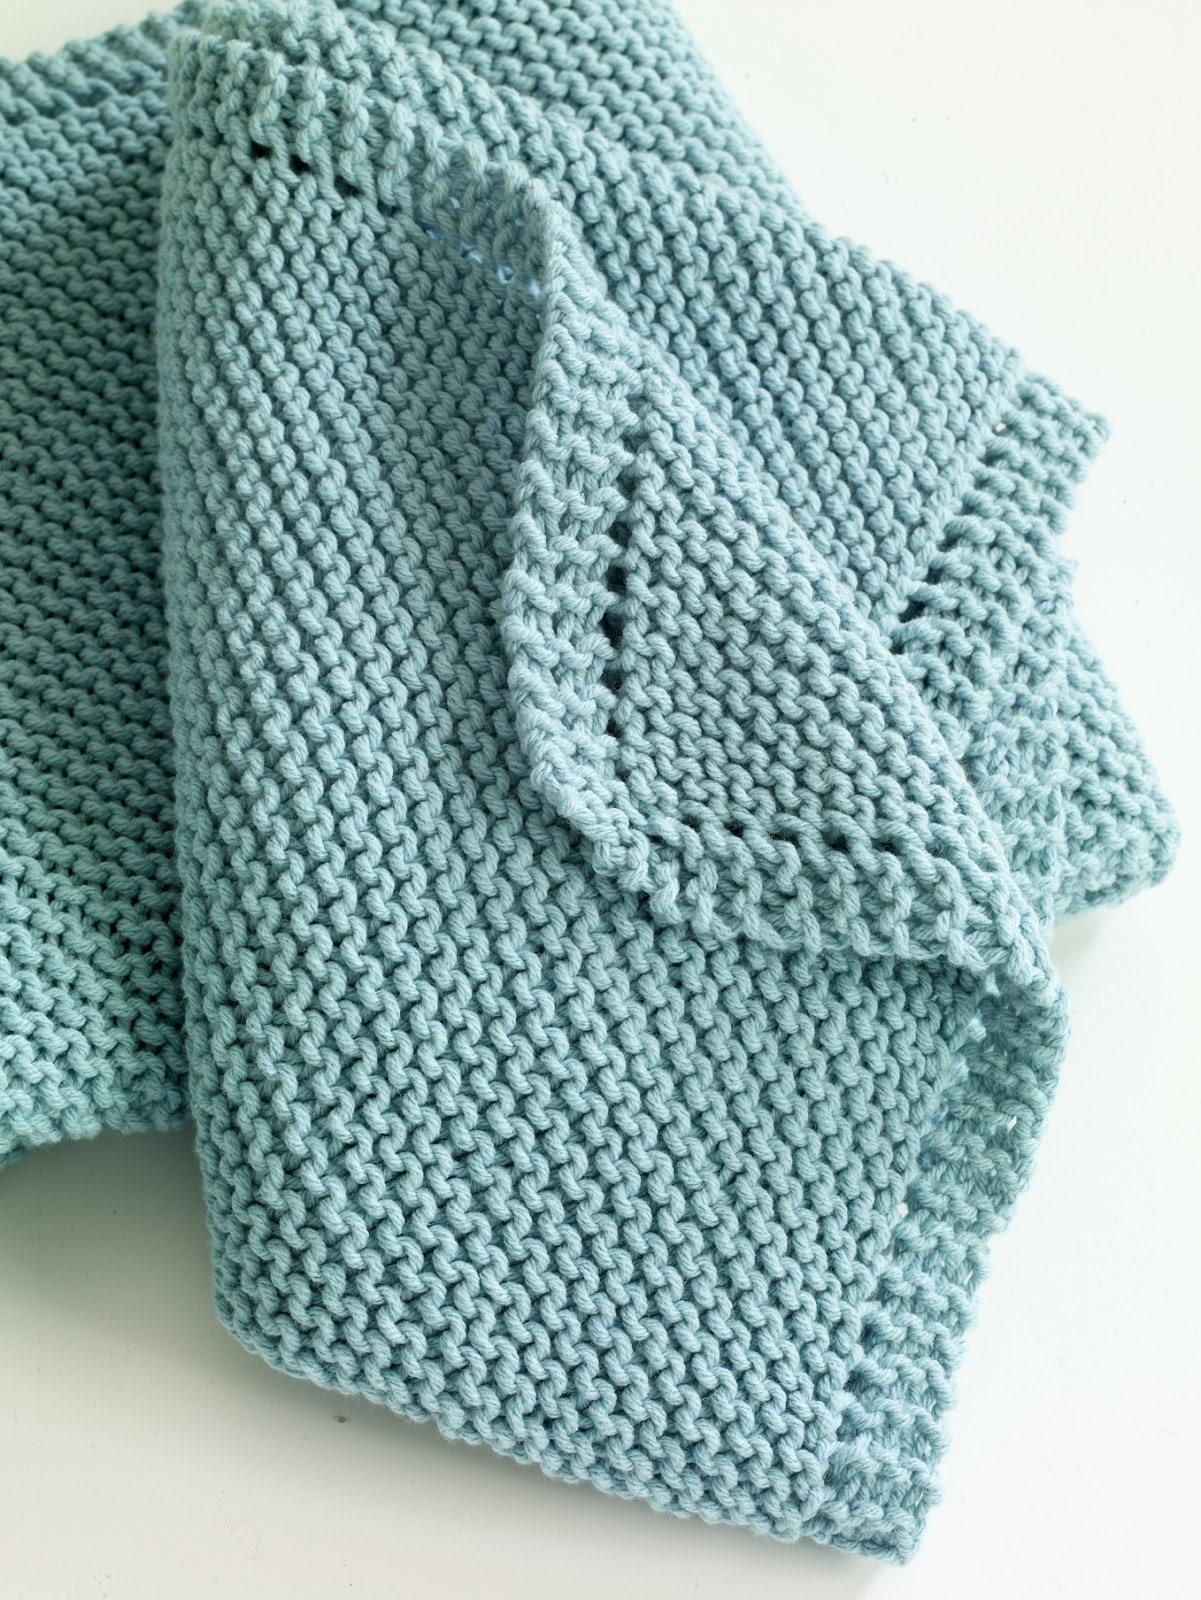 Knitting Patterns For Baby Blankets : Serenity Knits: December 2012